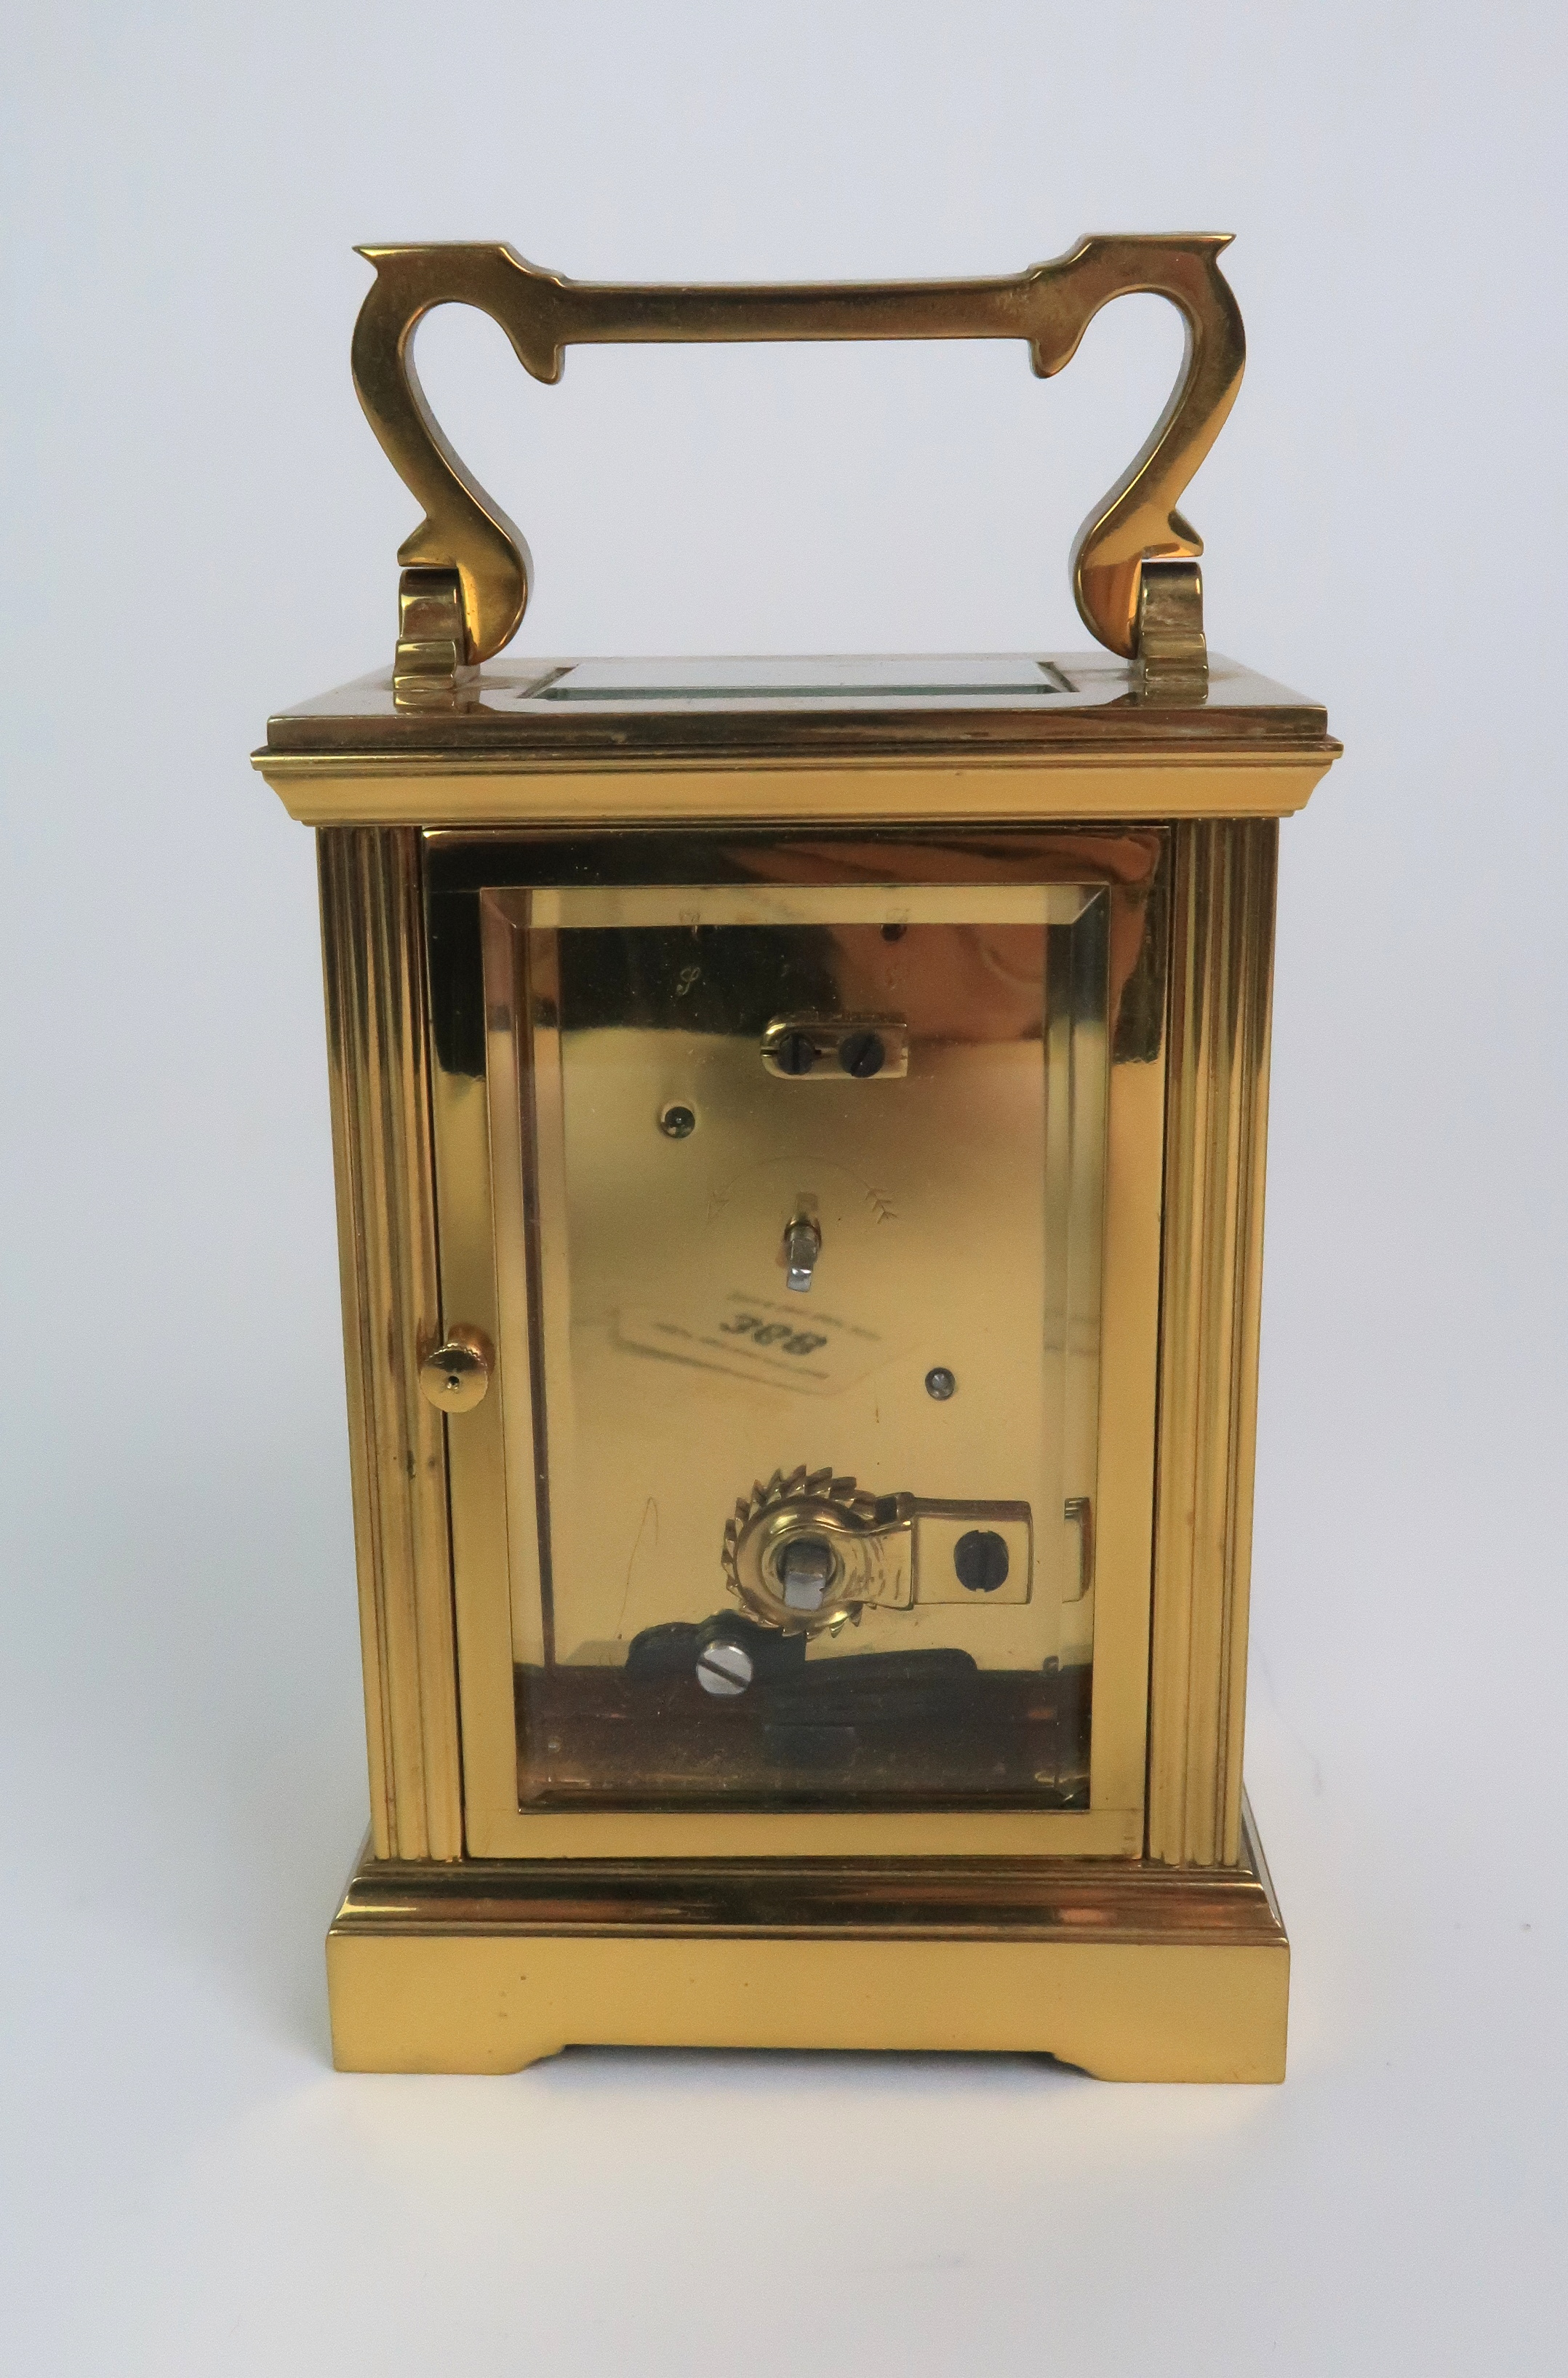 A GARRARD AND CO BRASS AND GLASS CARRIAGE CLOCK the white dial with Roman numerals and the - Image 3 of 6